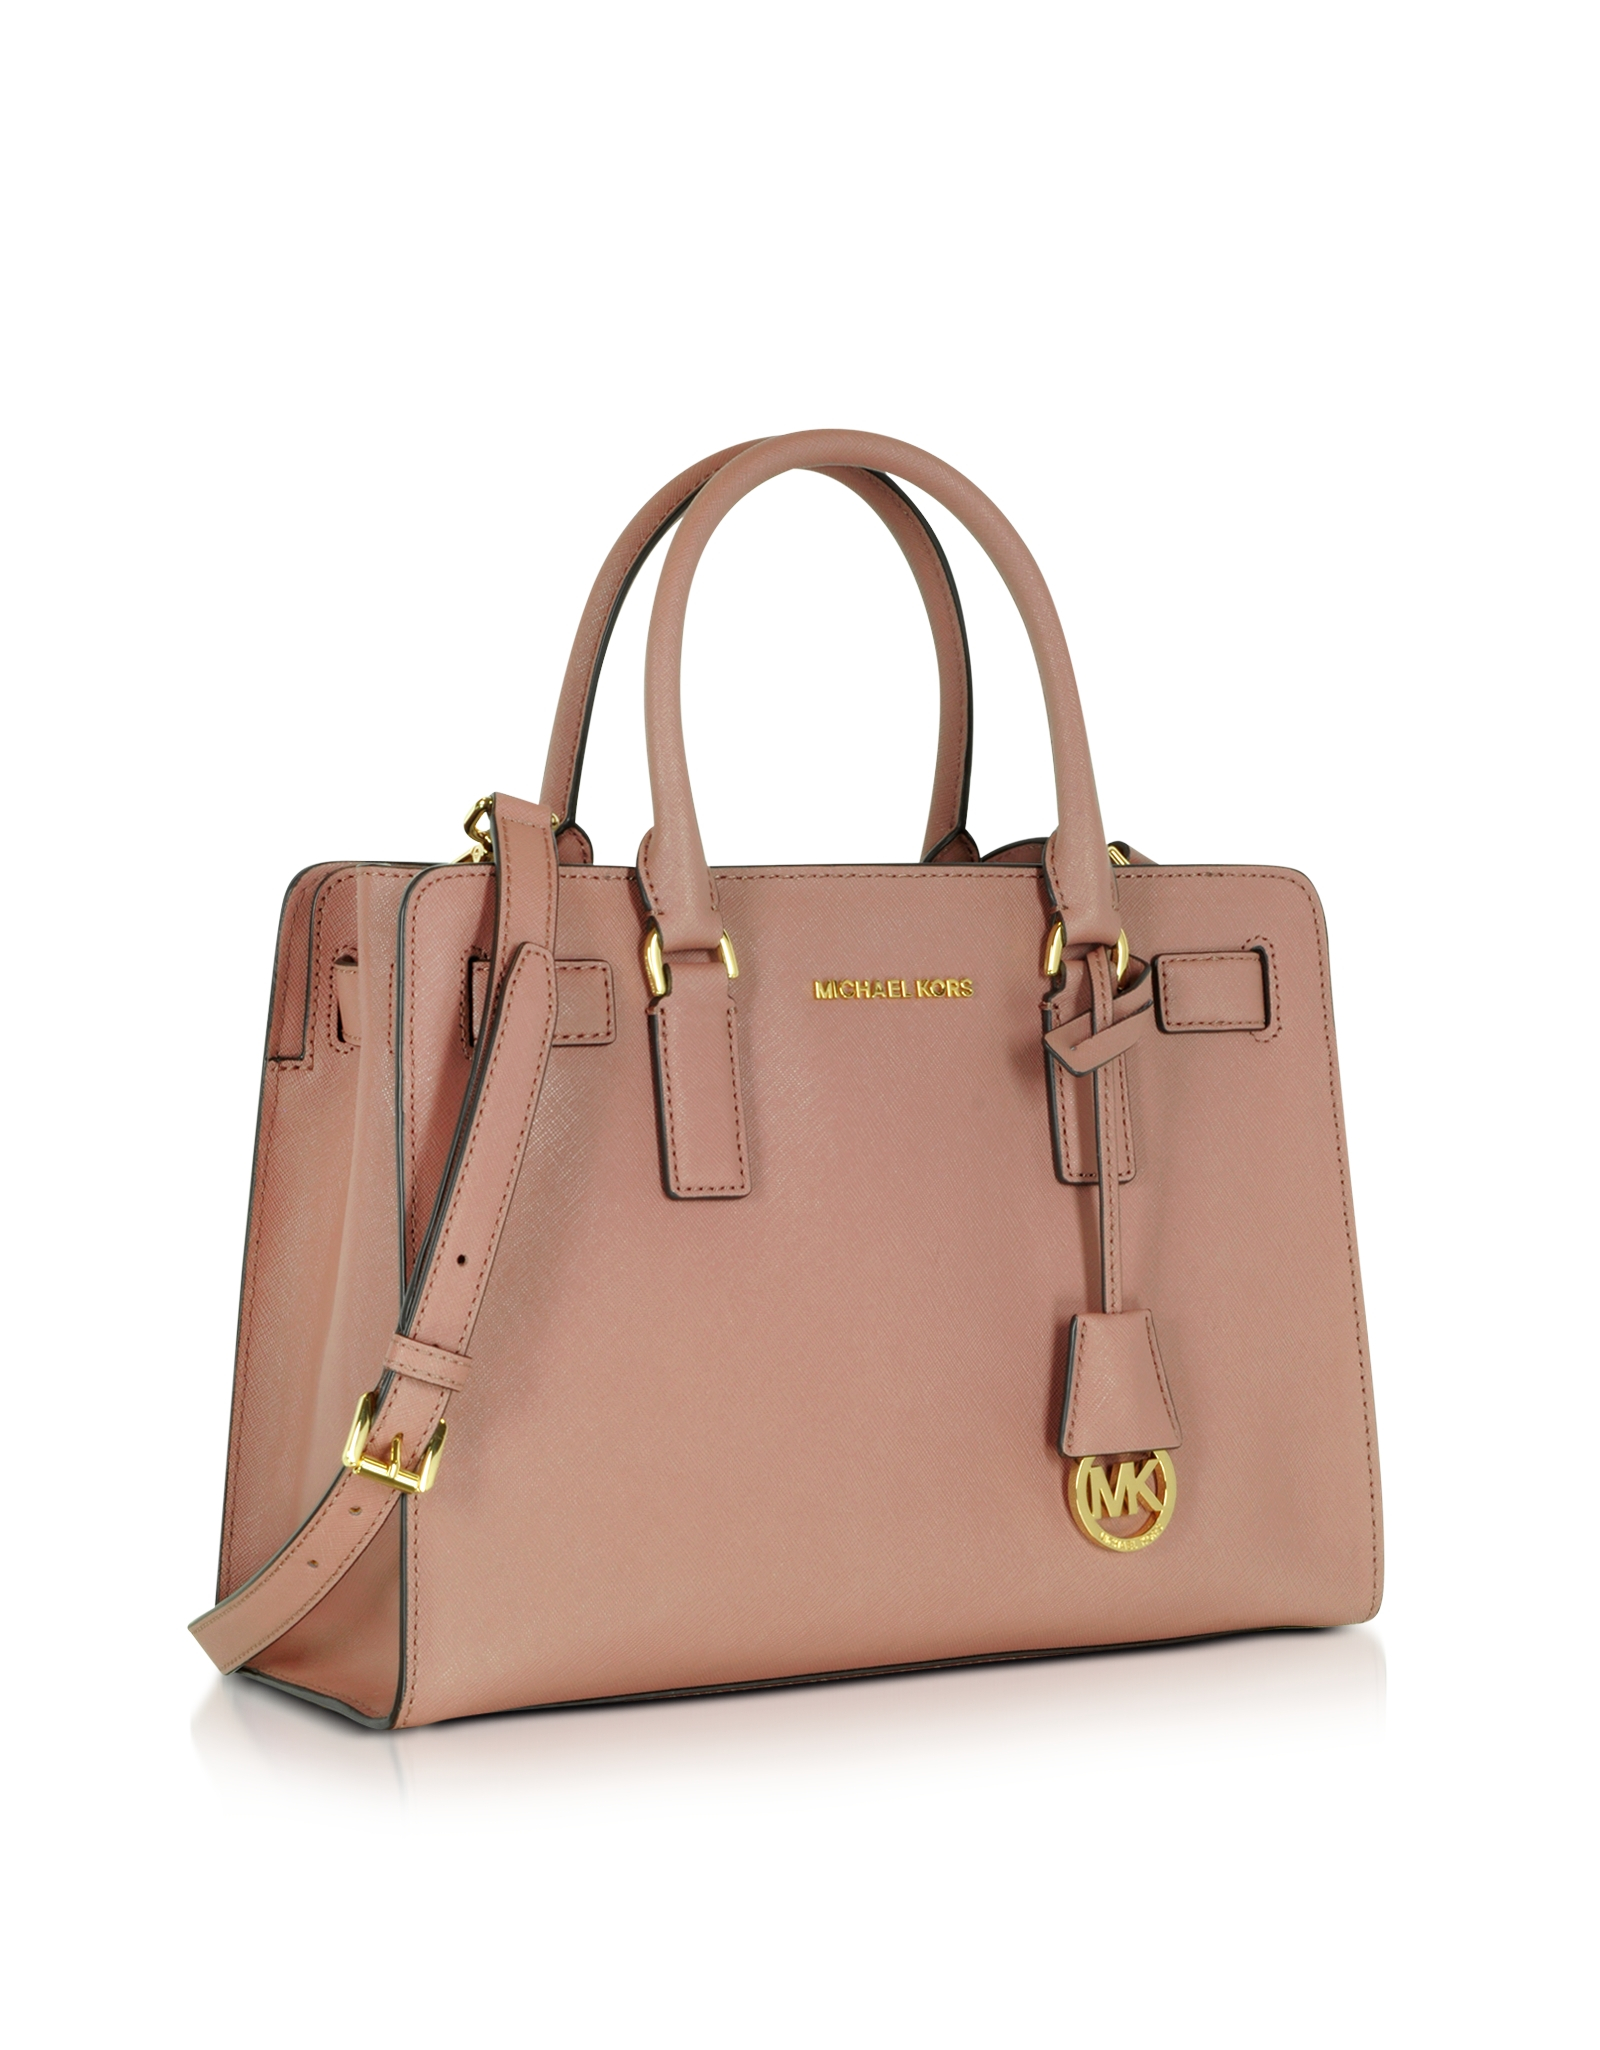 michael kors dillon dusty rose saffiano leather e w satchel in brown lyst. Black Bedroom Furniture Sets. Home Design Ideas